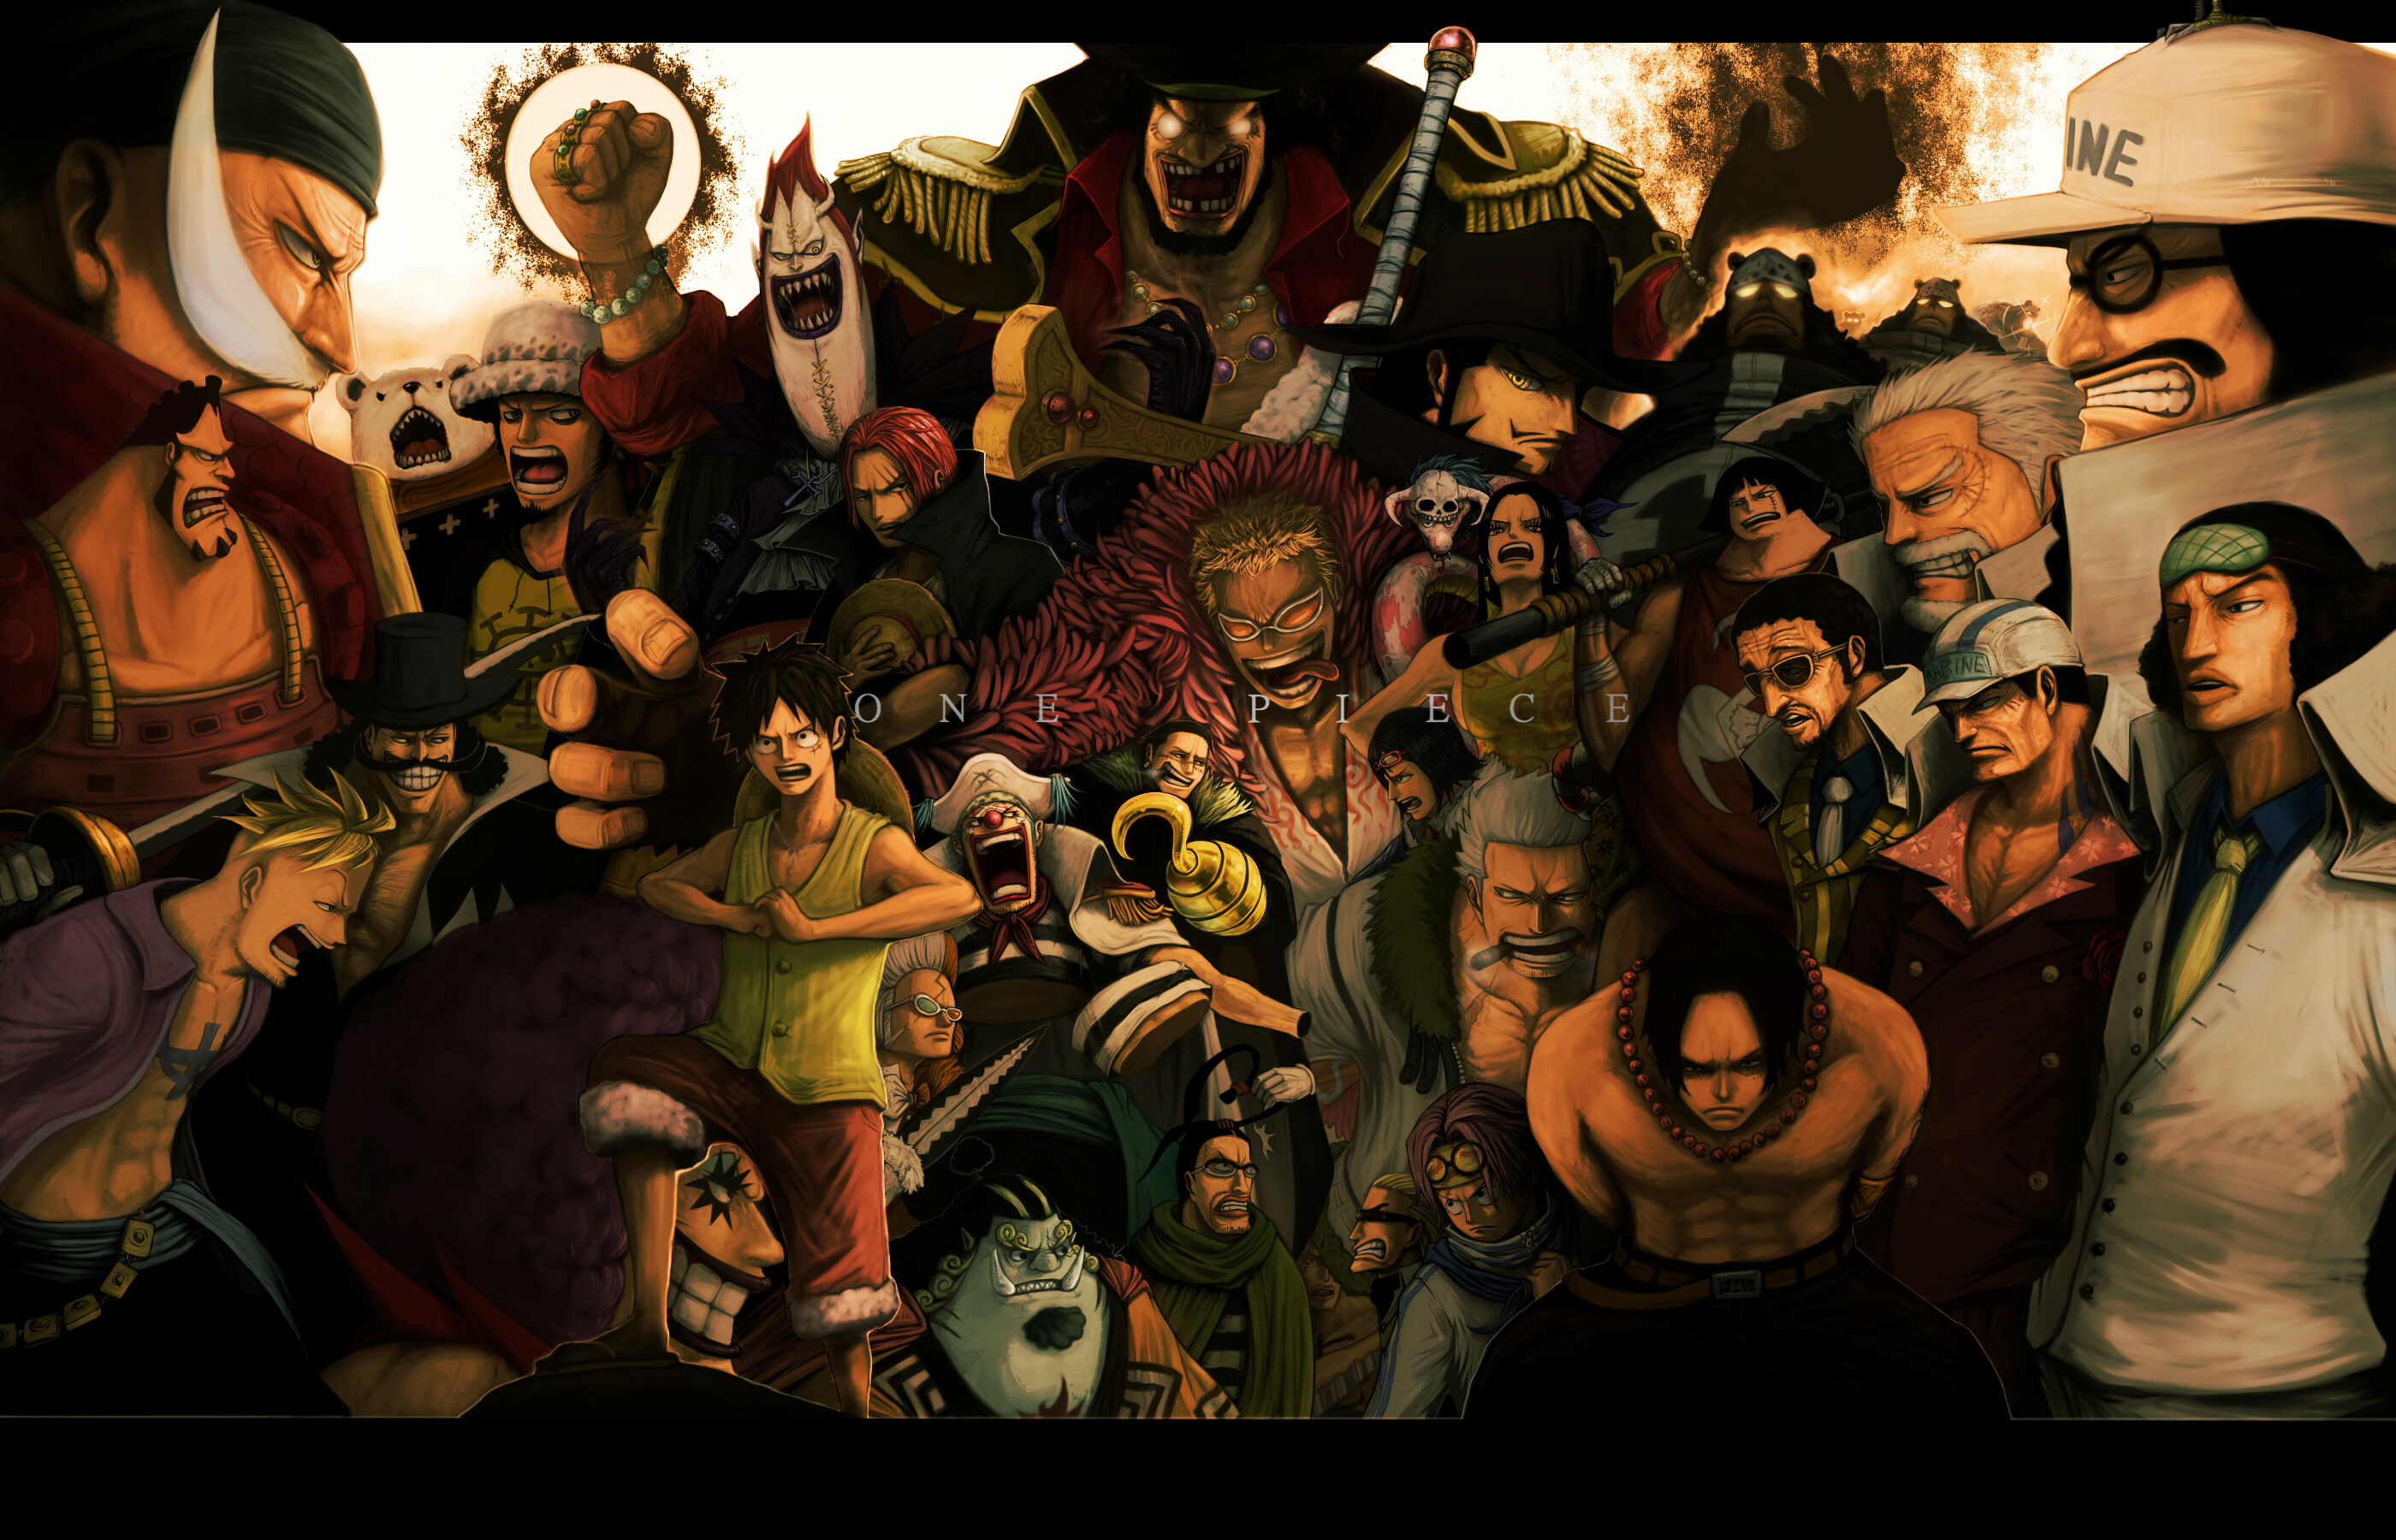 One Piece (anime) HD Wallpaper